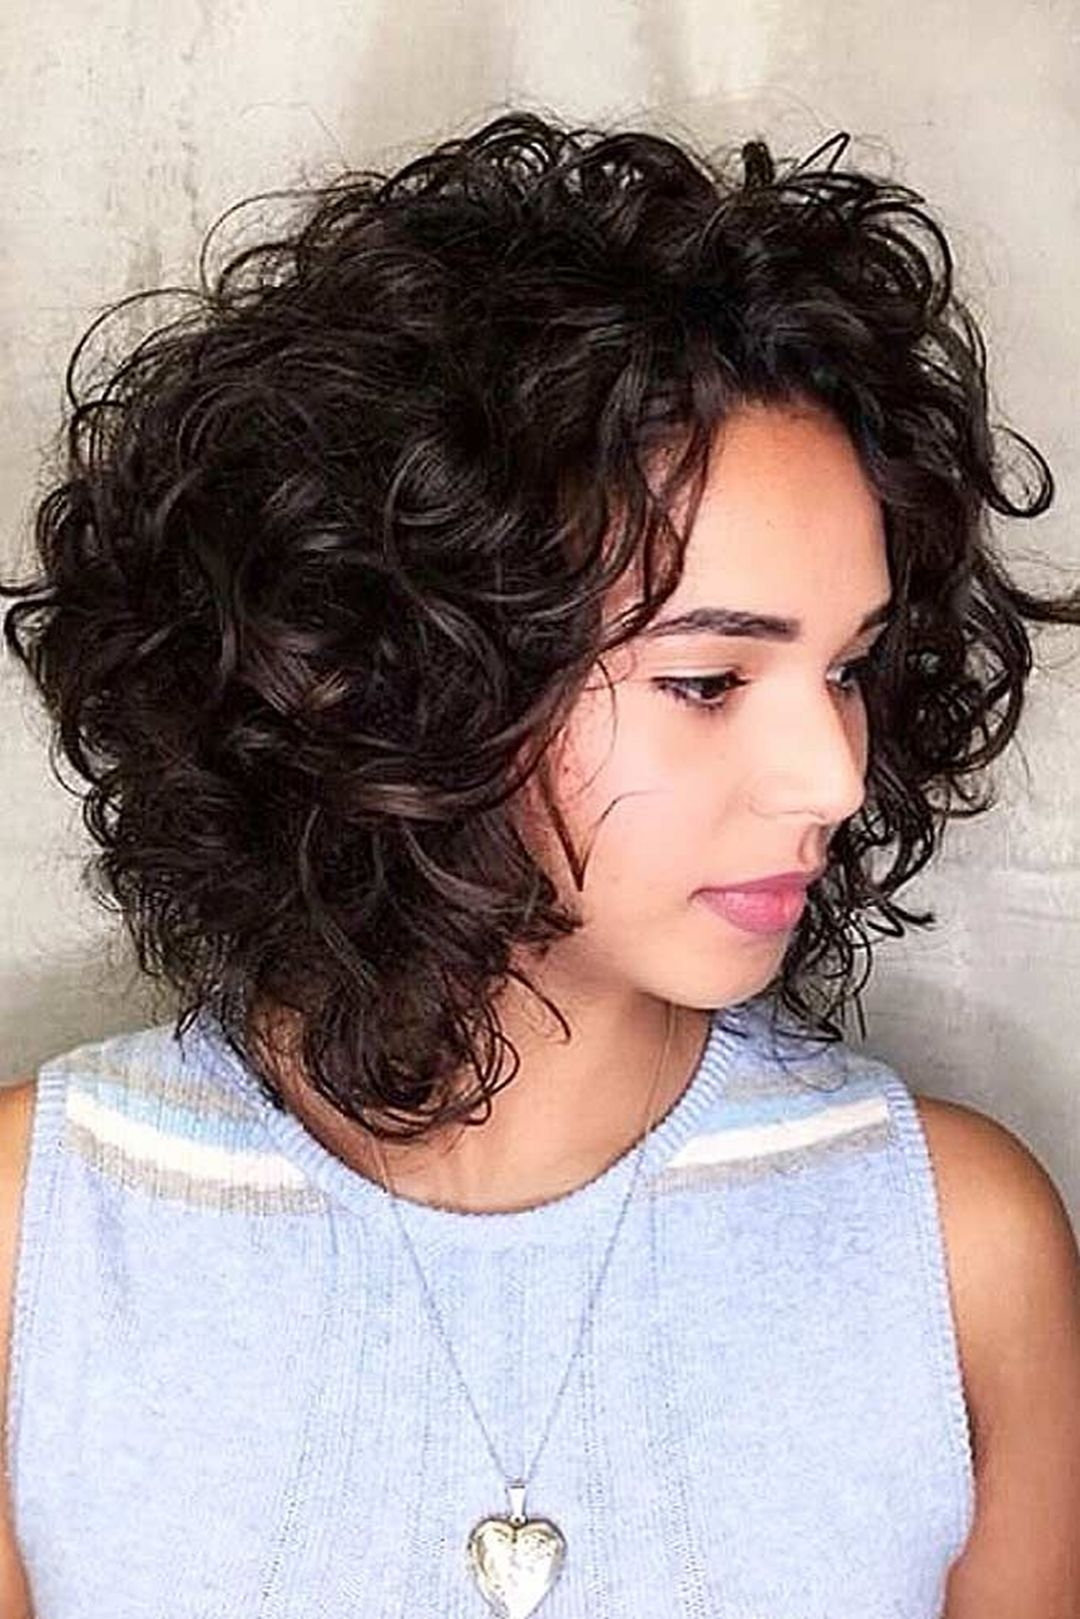 15 Chic Curly Hairstyles To Make You Look More Charming | Mid length curly hairstyles, Choppy ...